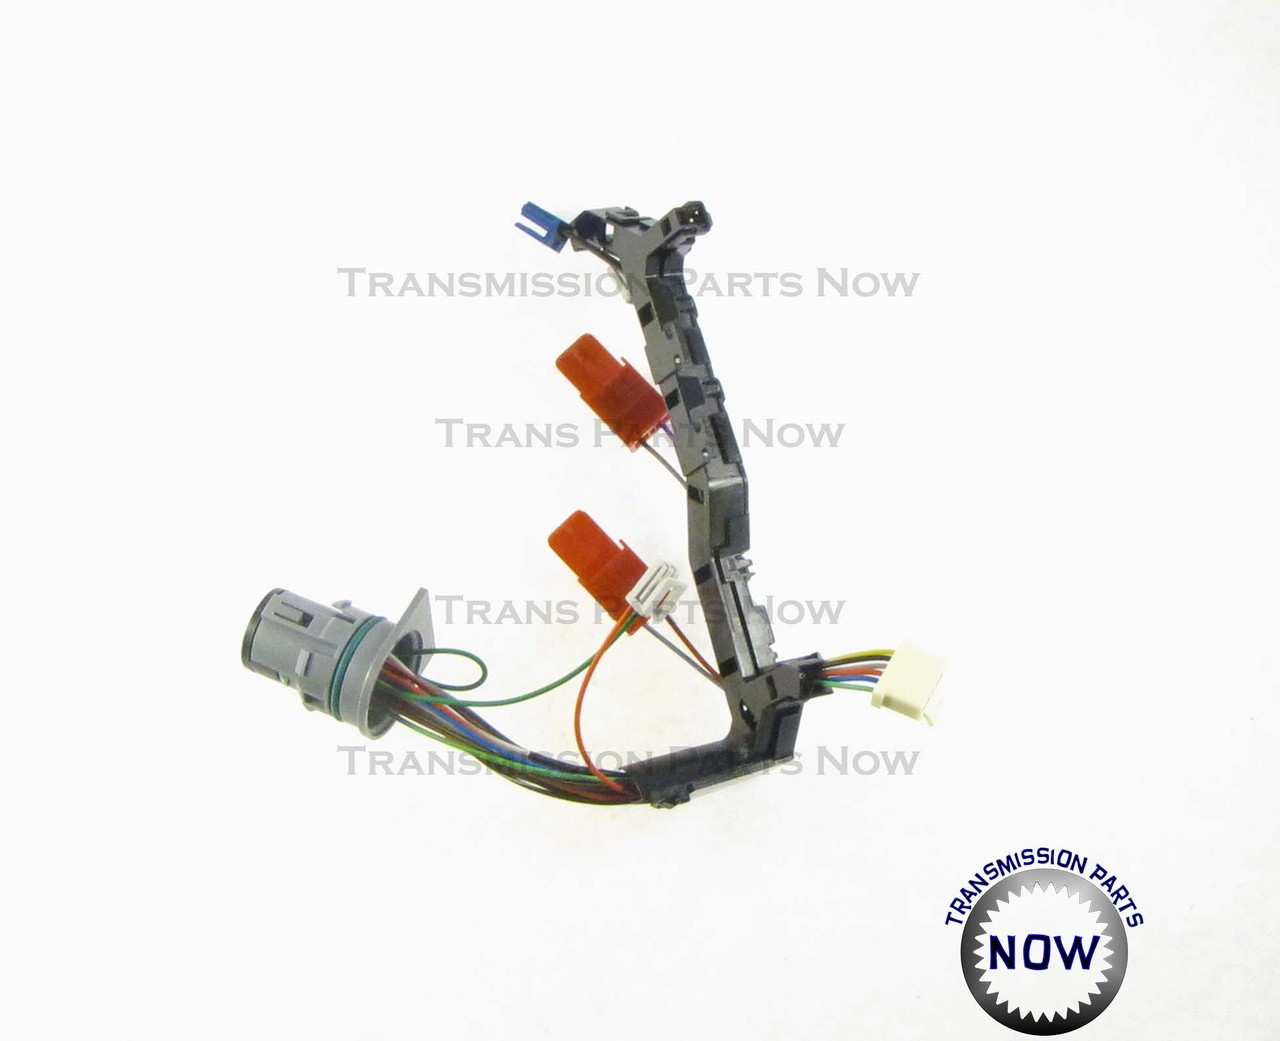 rostra wiring harness wiring diagram allison transmission wire harness made in the usa rostrarostra wiring harness [ 1280 x 1041 Pixel ]